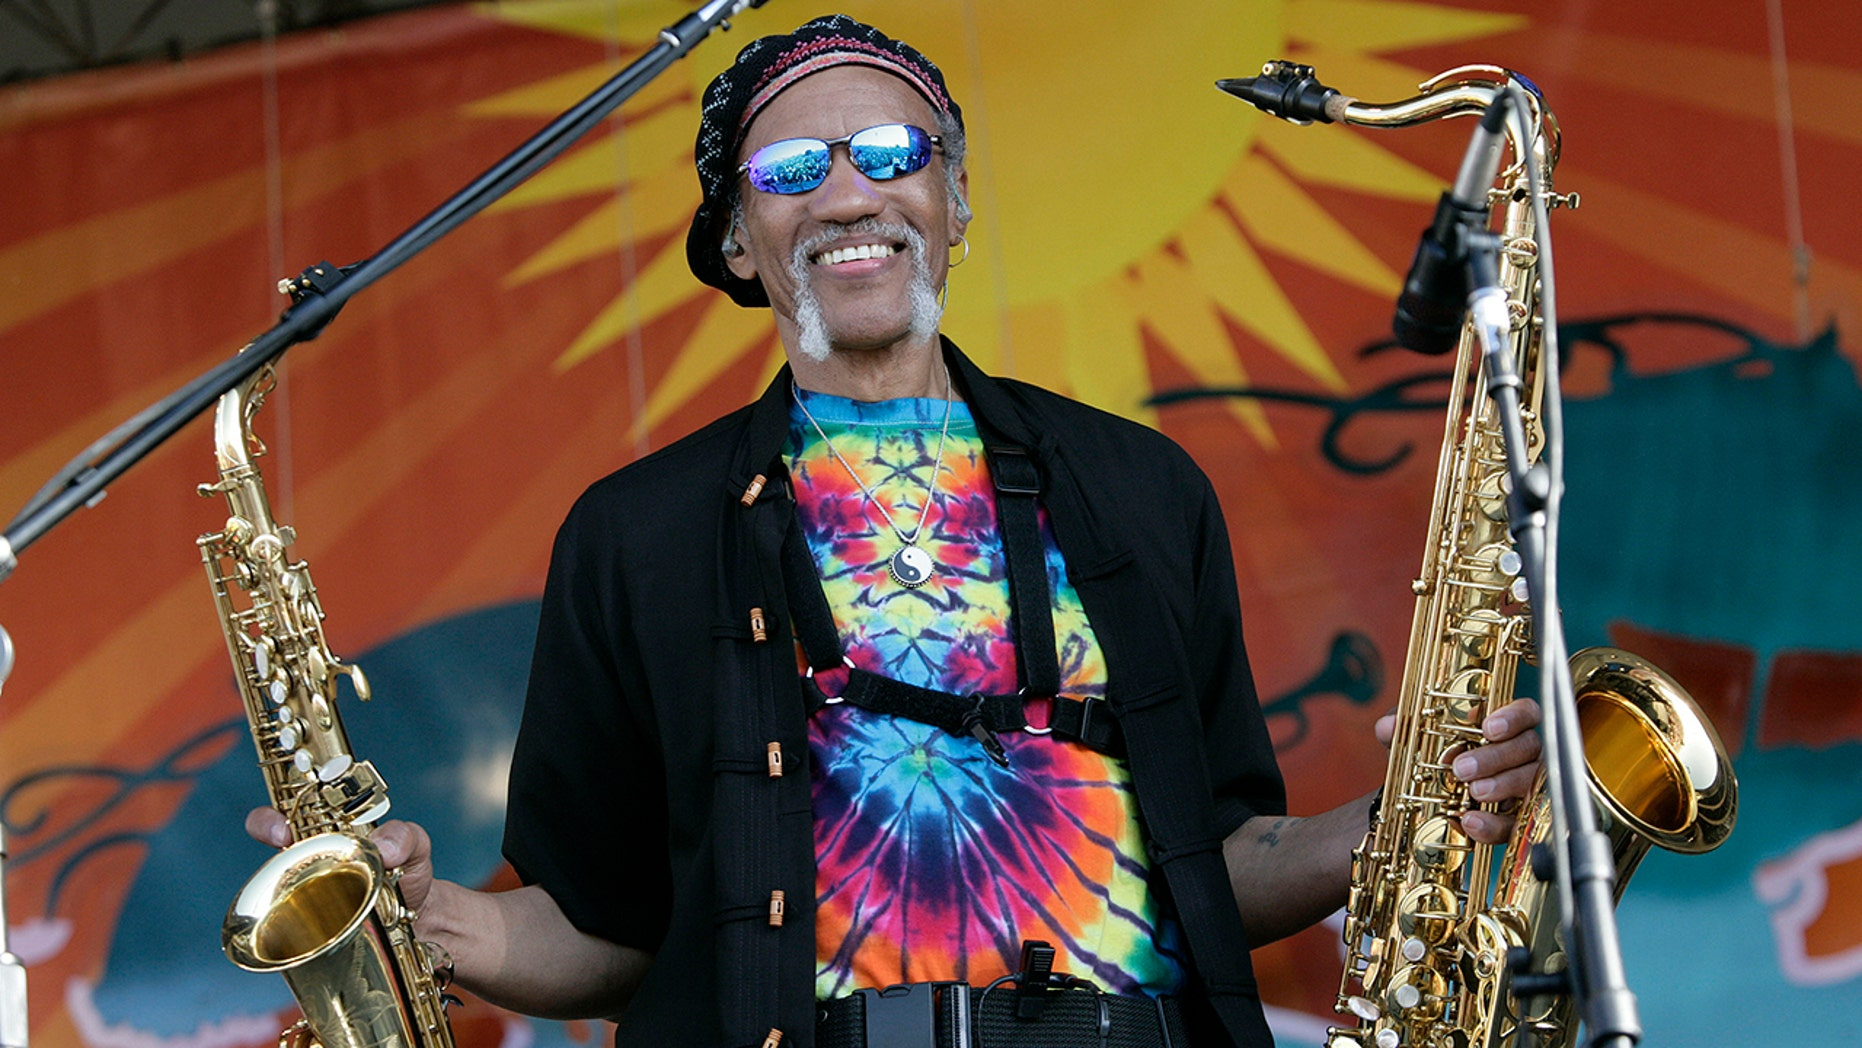 Charles Neville, sax player of the influential Neville Brothers band, died Thursday after battling pancreatic cancer.